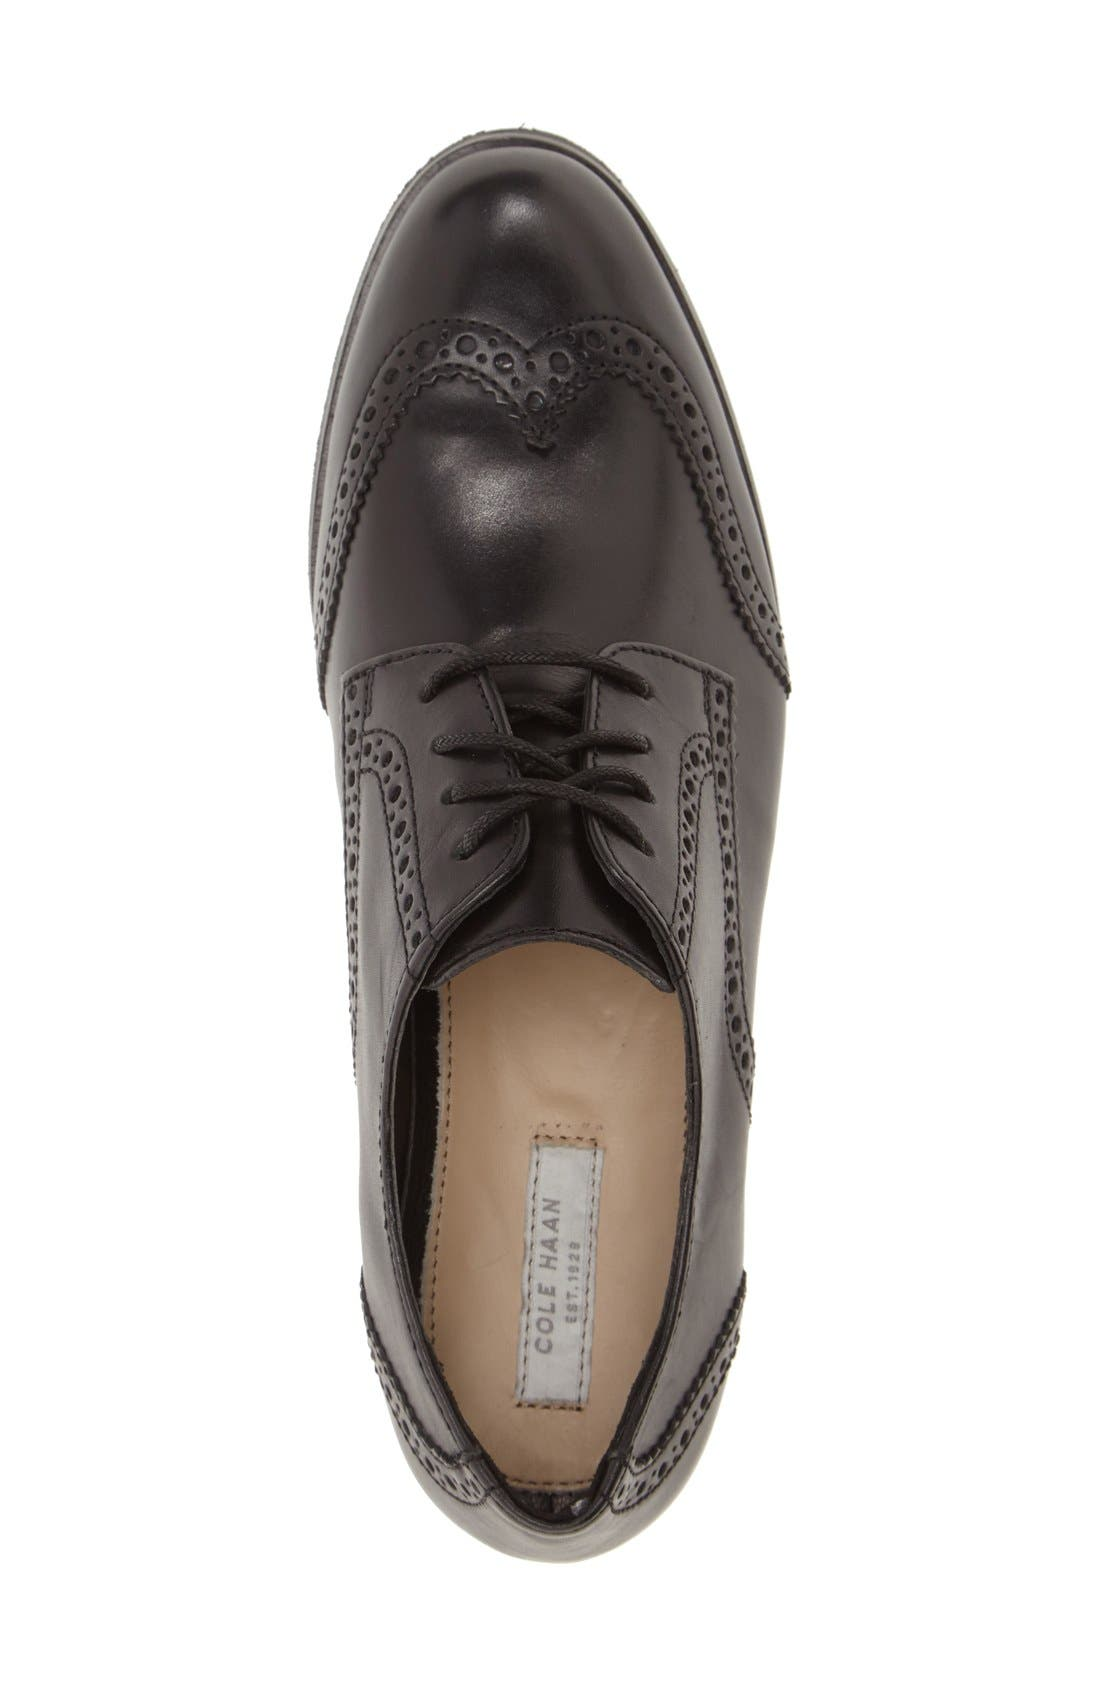 COLE HAAN,                             Grand.OS Oxford,                             Alternate thumbnail 2, color,                             001